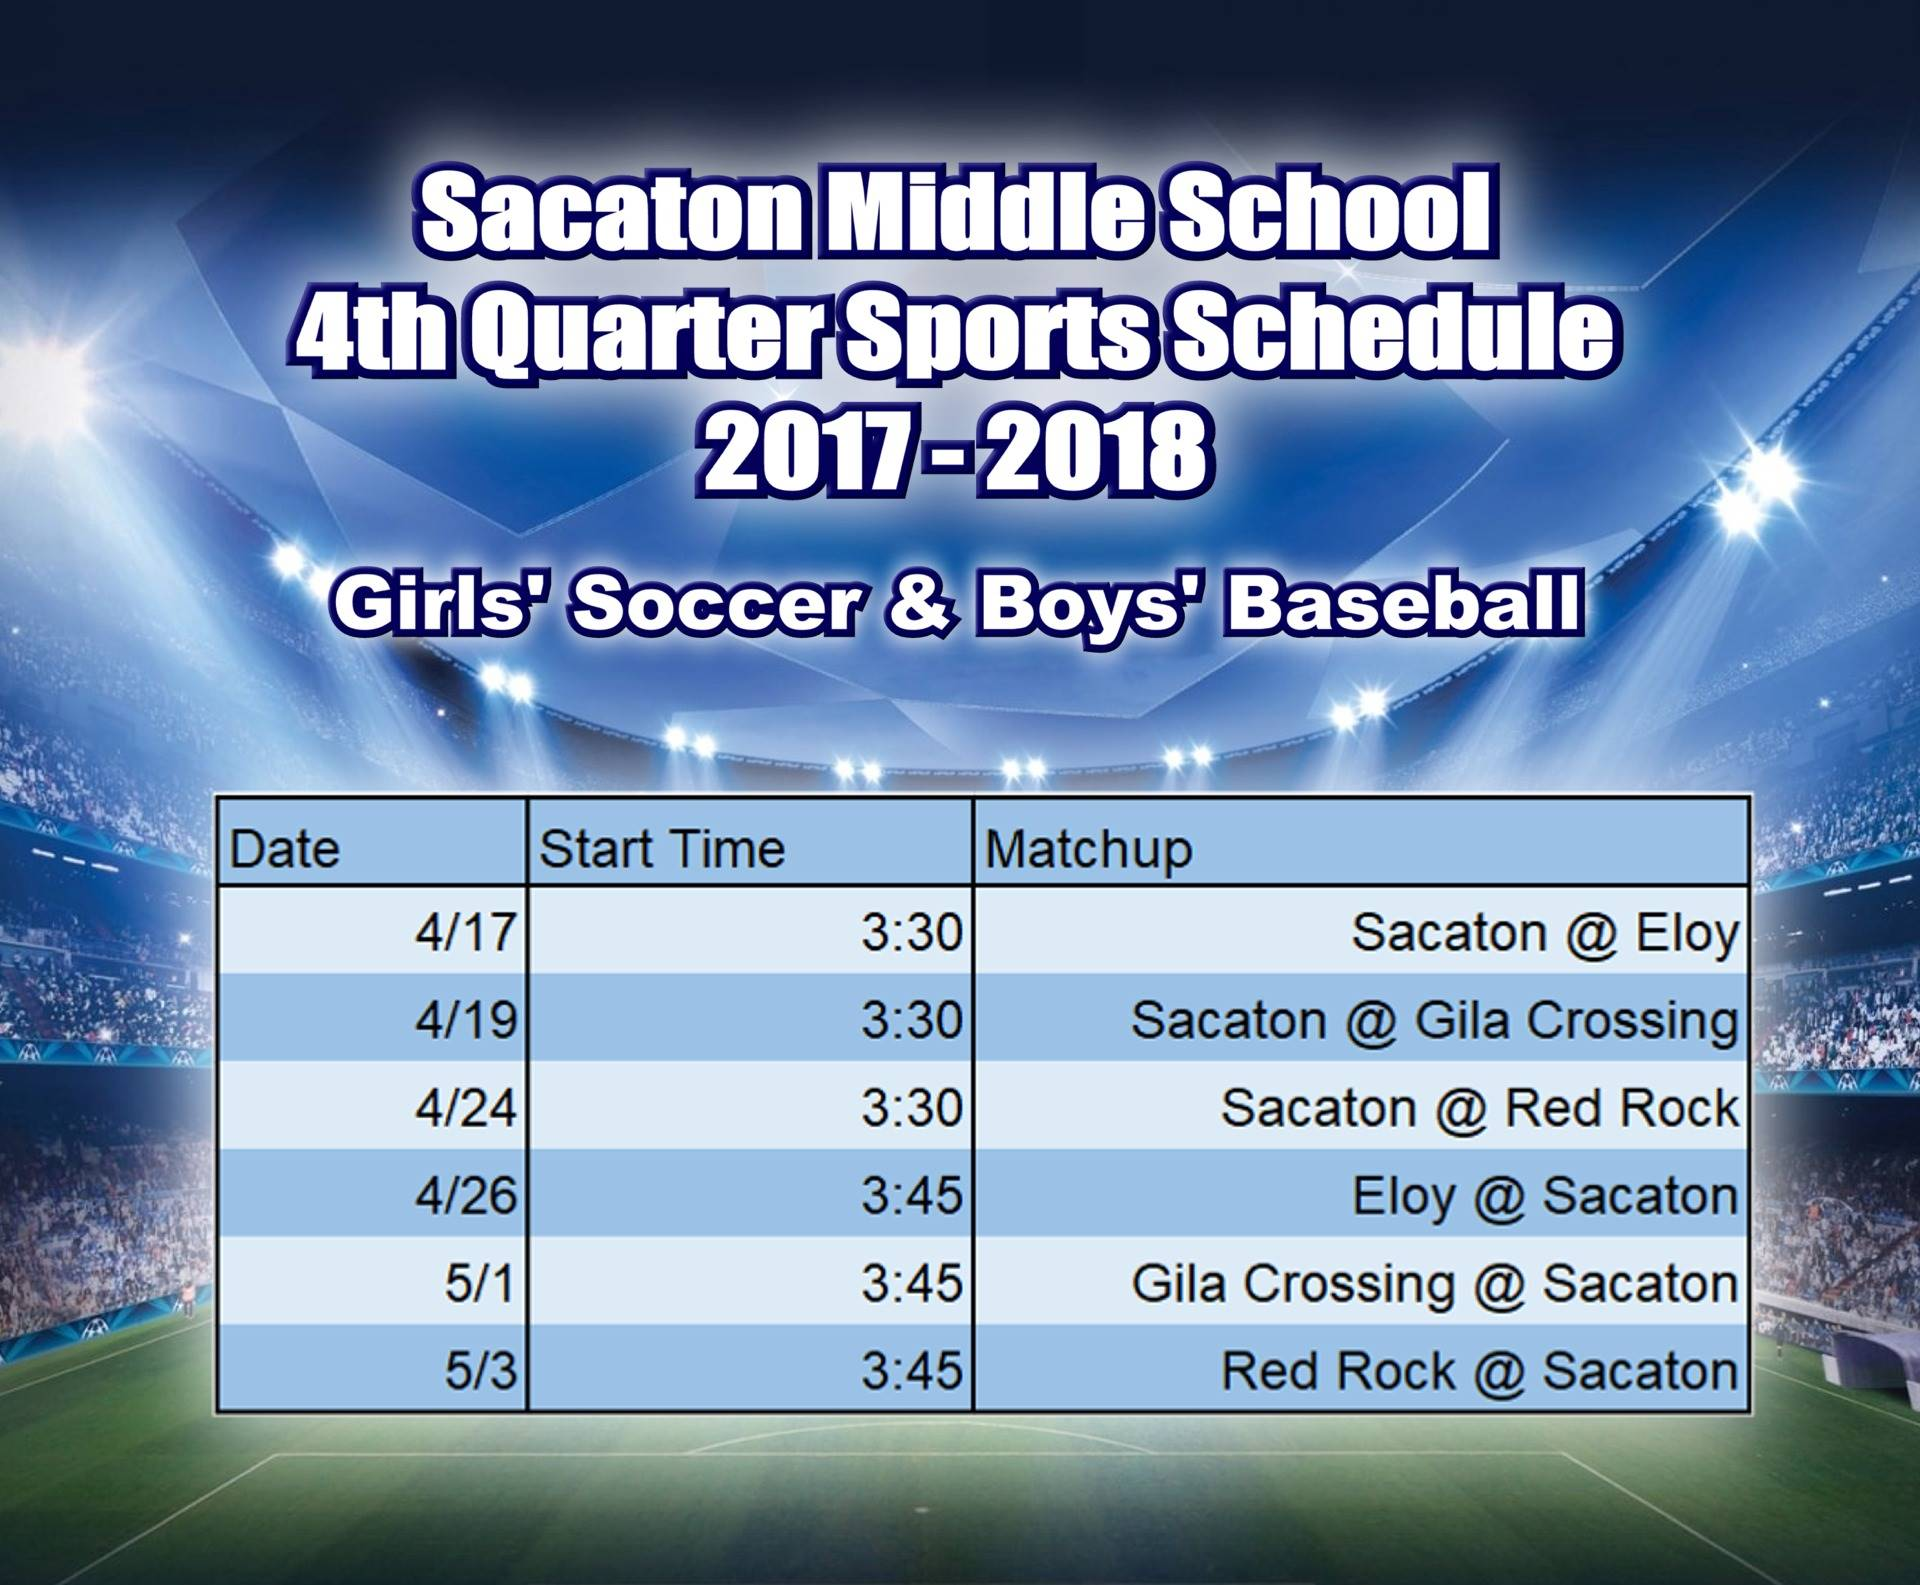 4th Quarter Sports Schedule